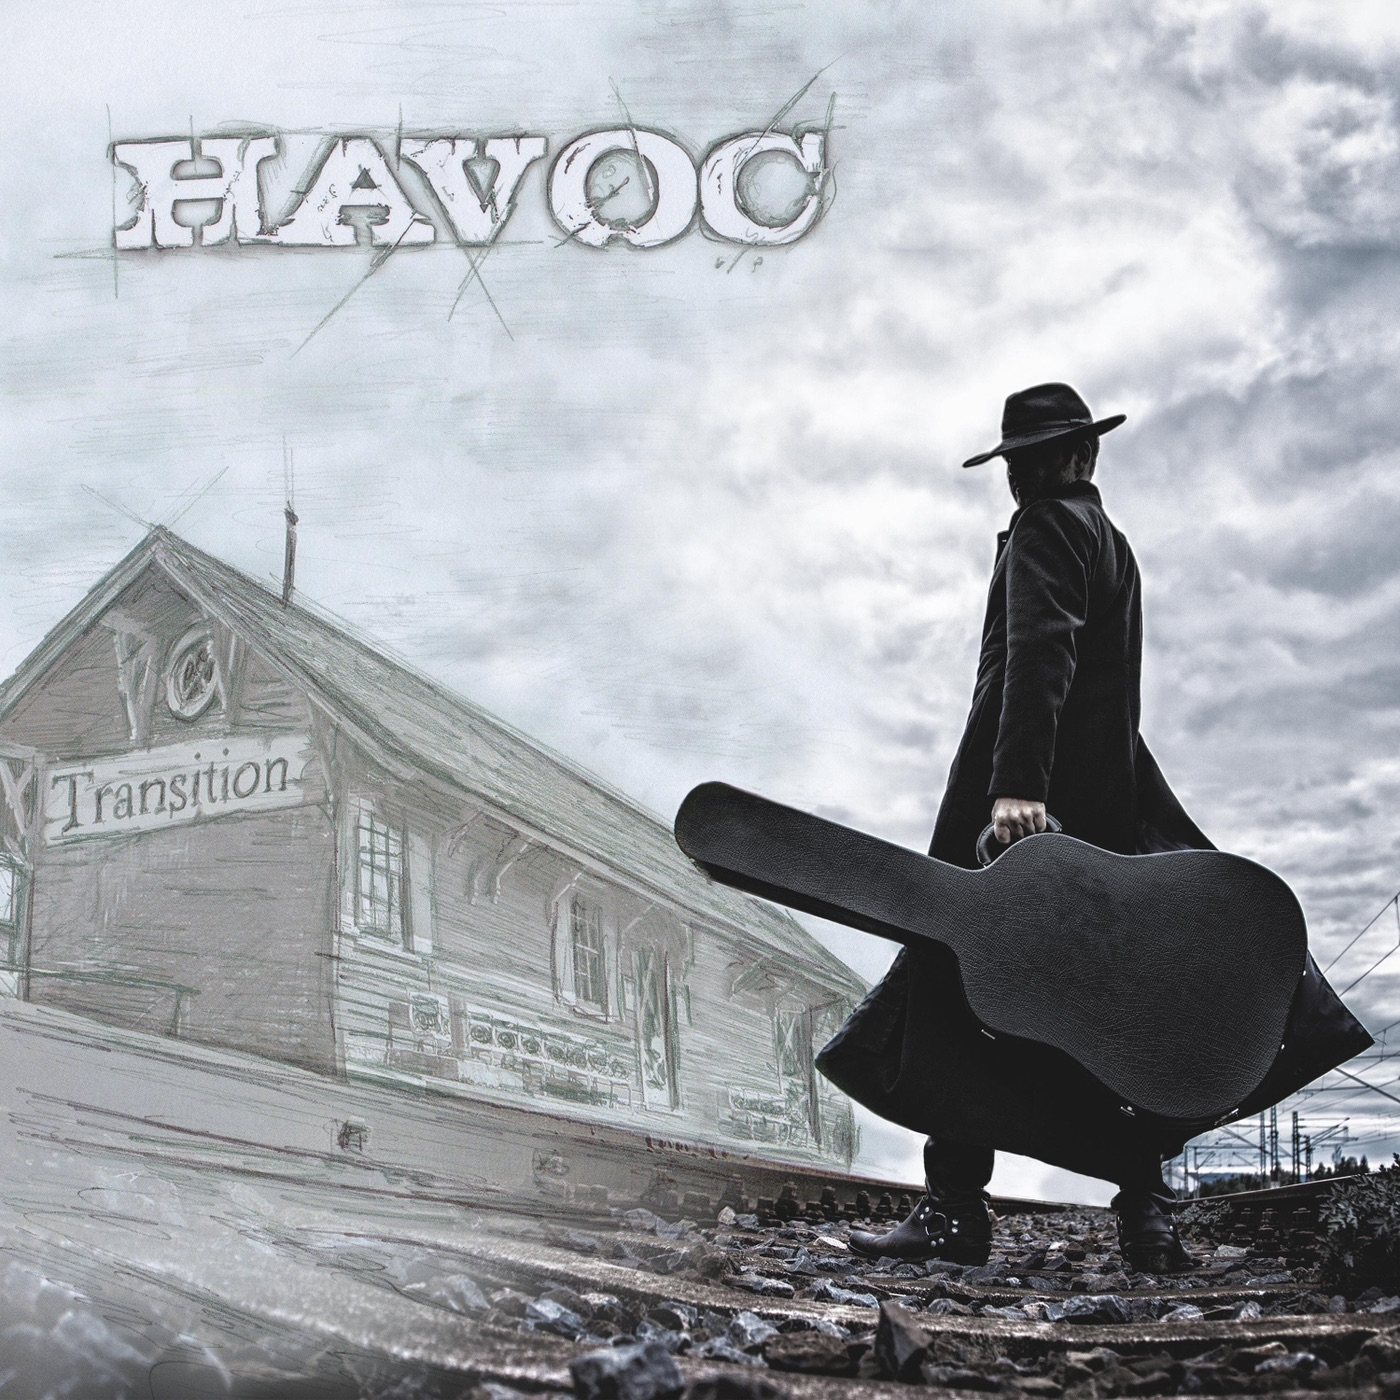 MP3 Songs Online:♫ Blind - Havoc album Transition. Metal,Music,Rock listen to music online free without downloading.